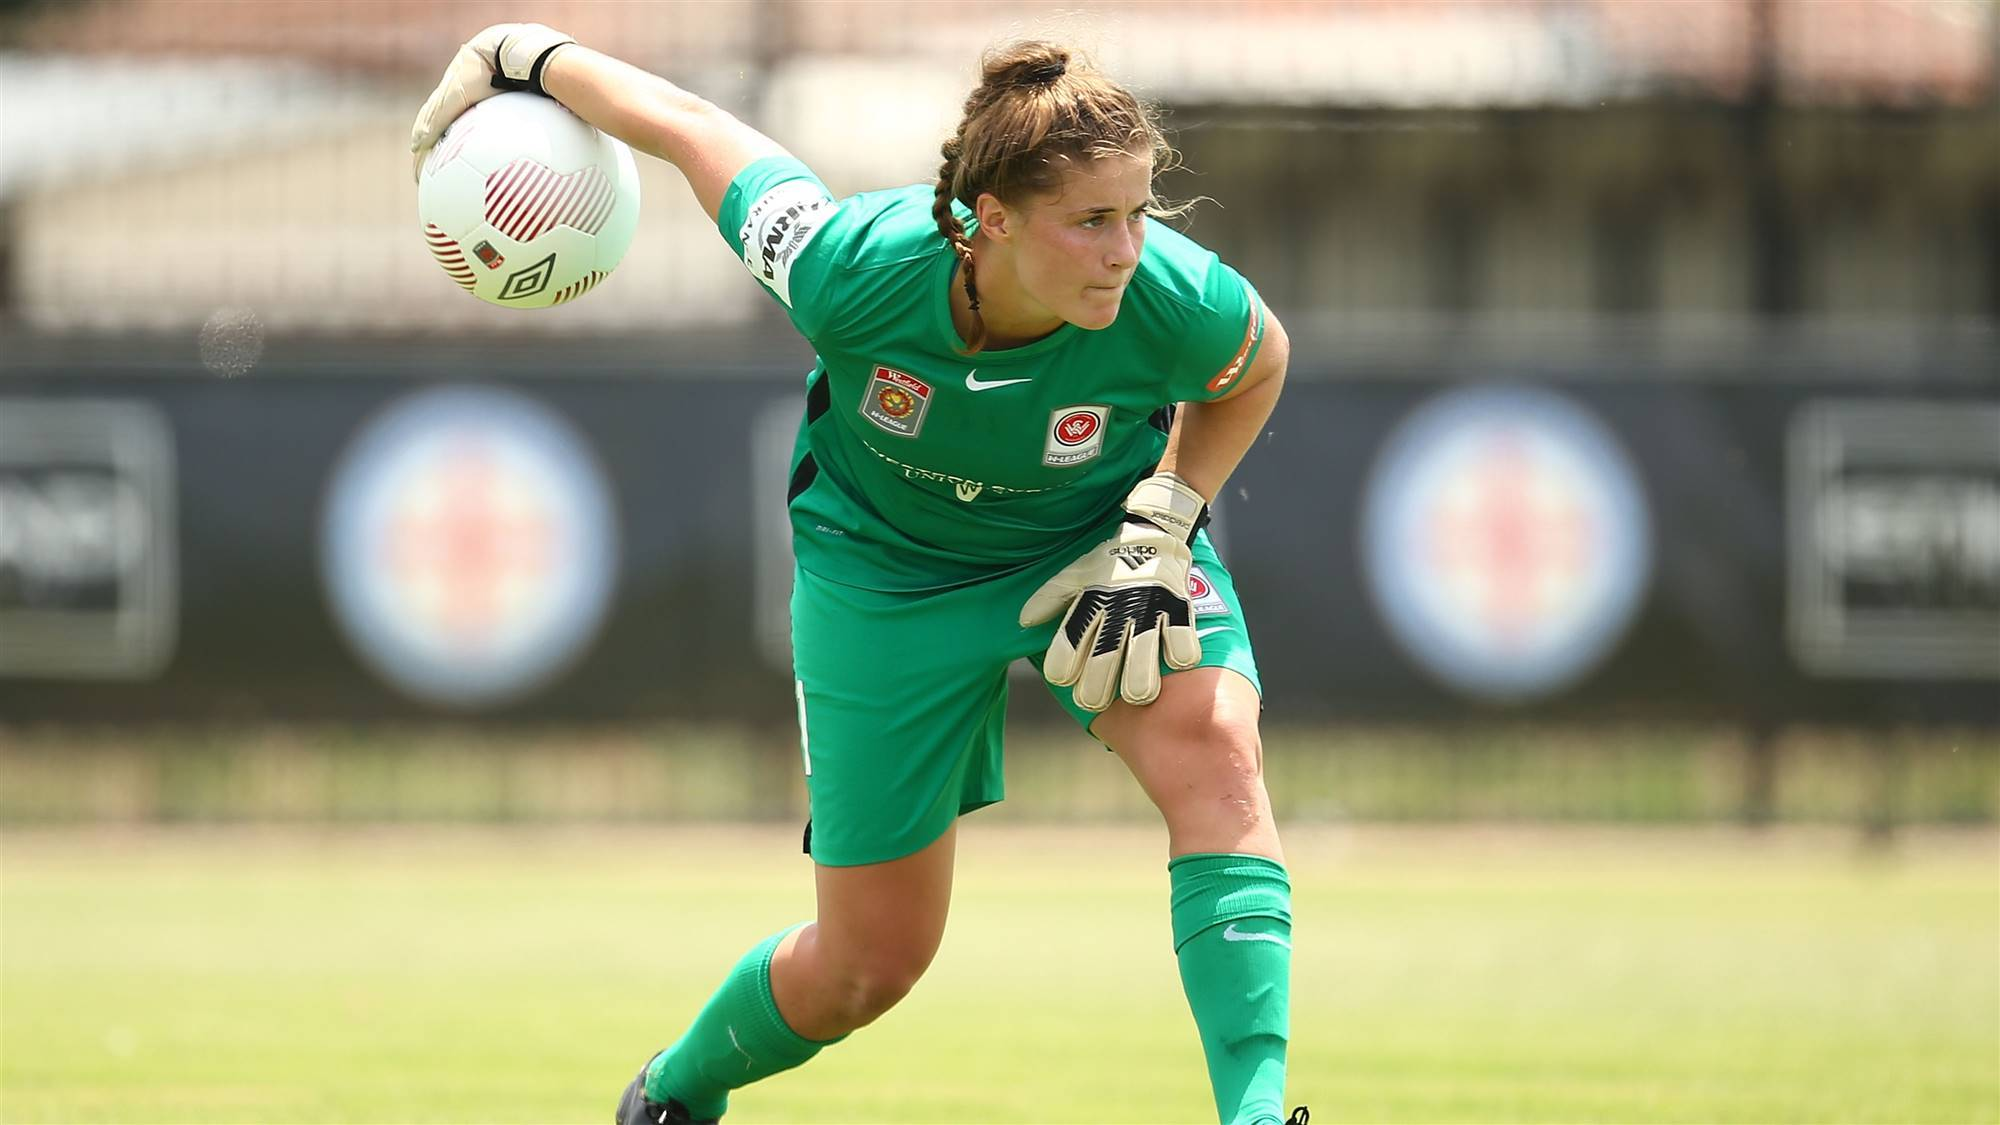 Matildas goalkeeper secures 'beautiful country' move in search of Olympic spot